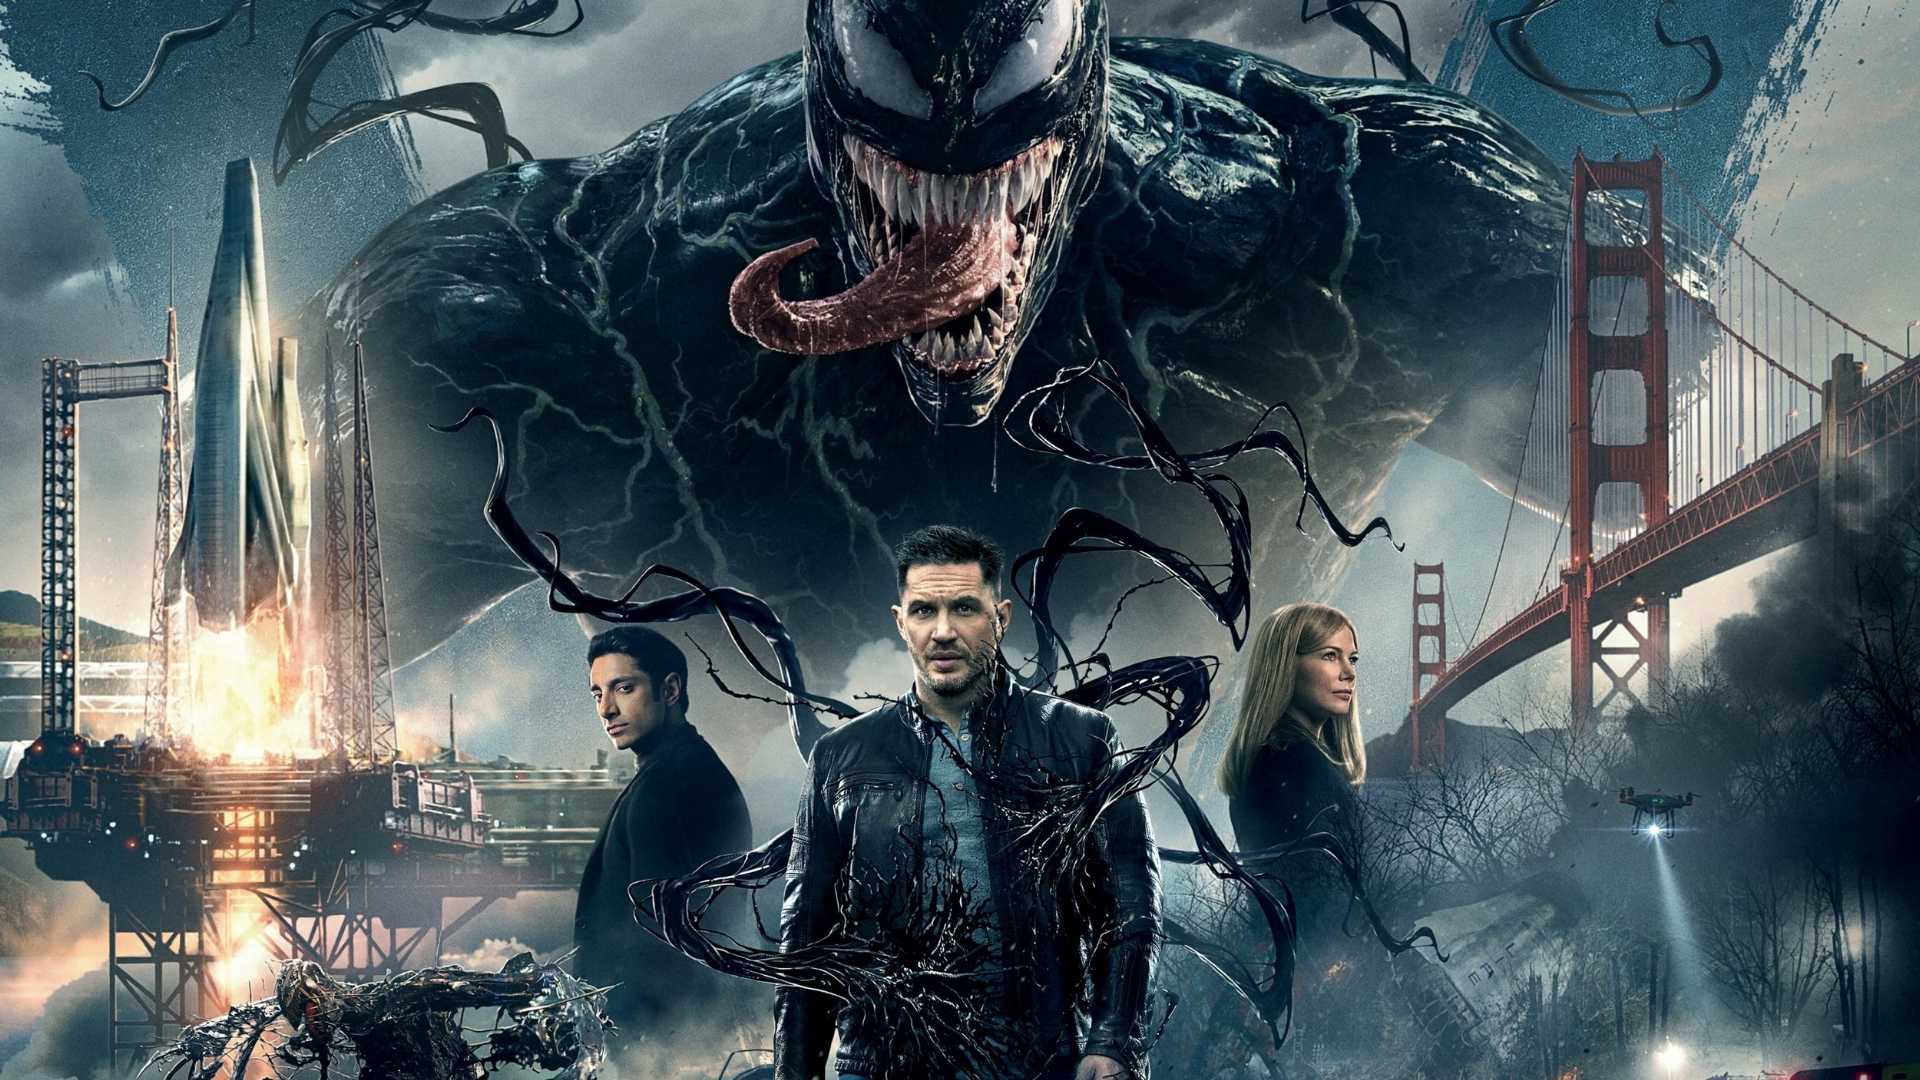 Fun with solo symbiotes… - Although the philosophy behind its creation is troubling, Venom makes for a surprisingly fun – if simplistic – comic book movie.